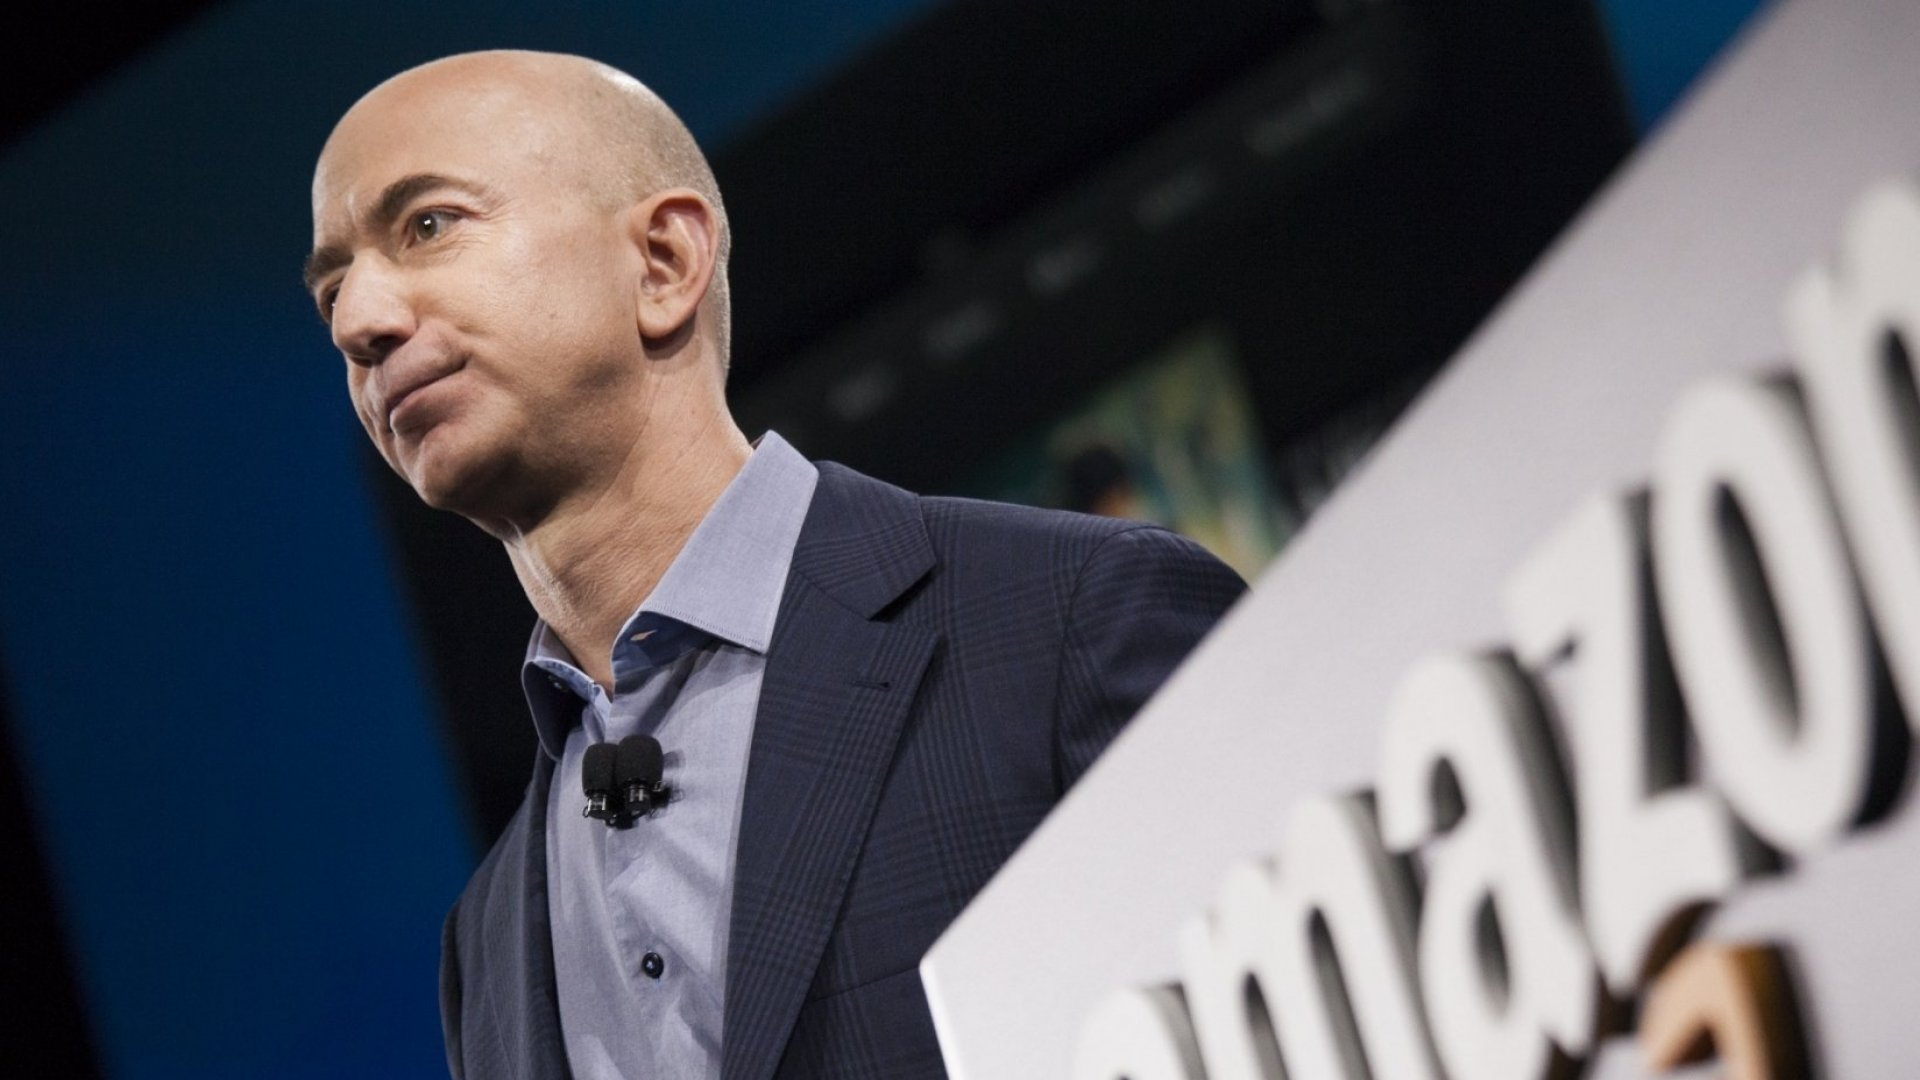 Jeff Bezos Says You Should Ask These 3 Questions Before Every New Hire